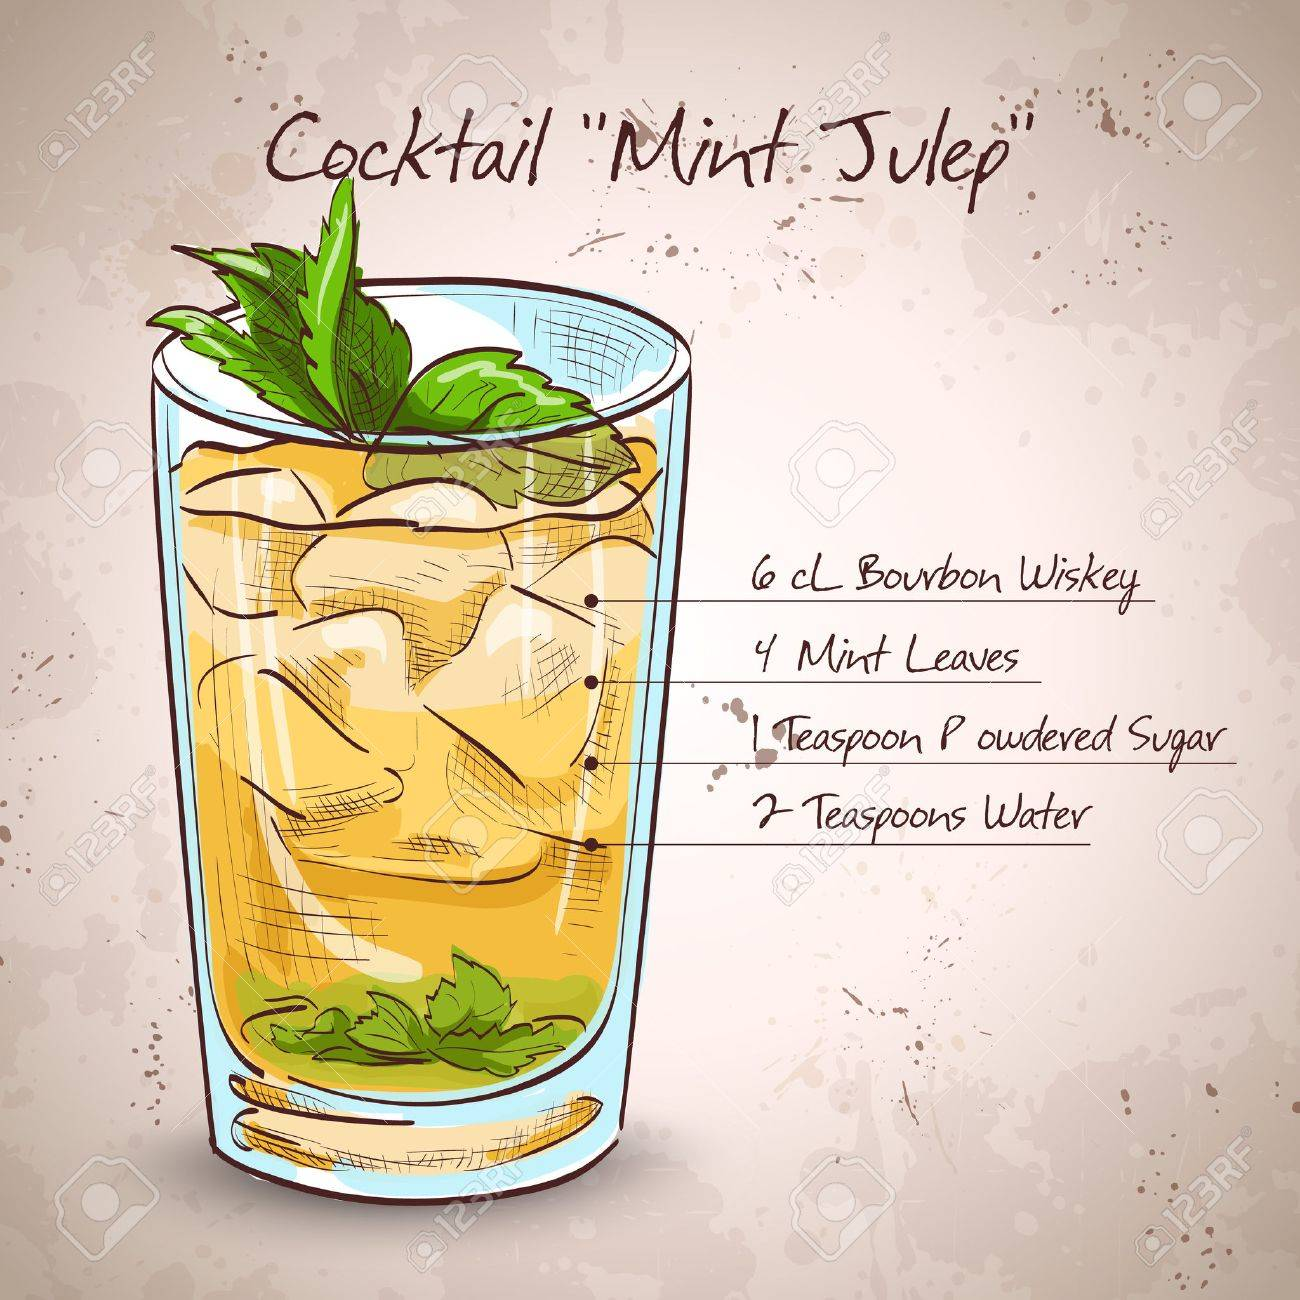 Classic Kentucky derby cocktail the Mint julep. It consists of..